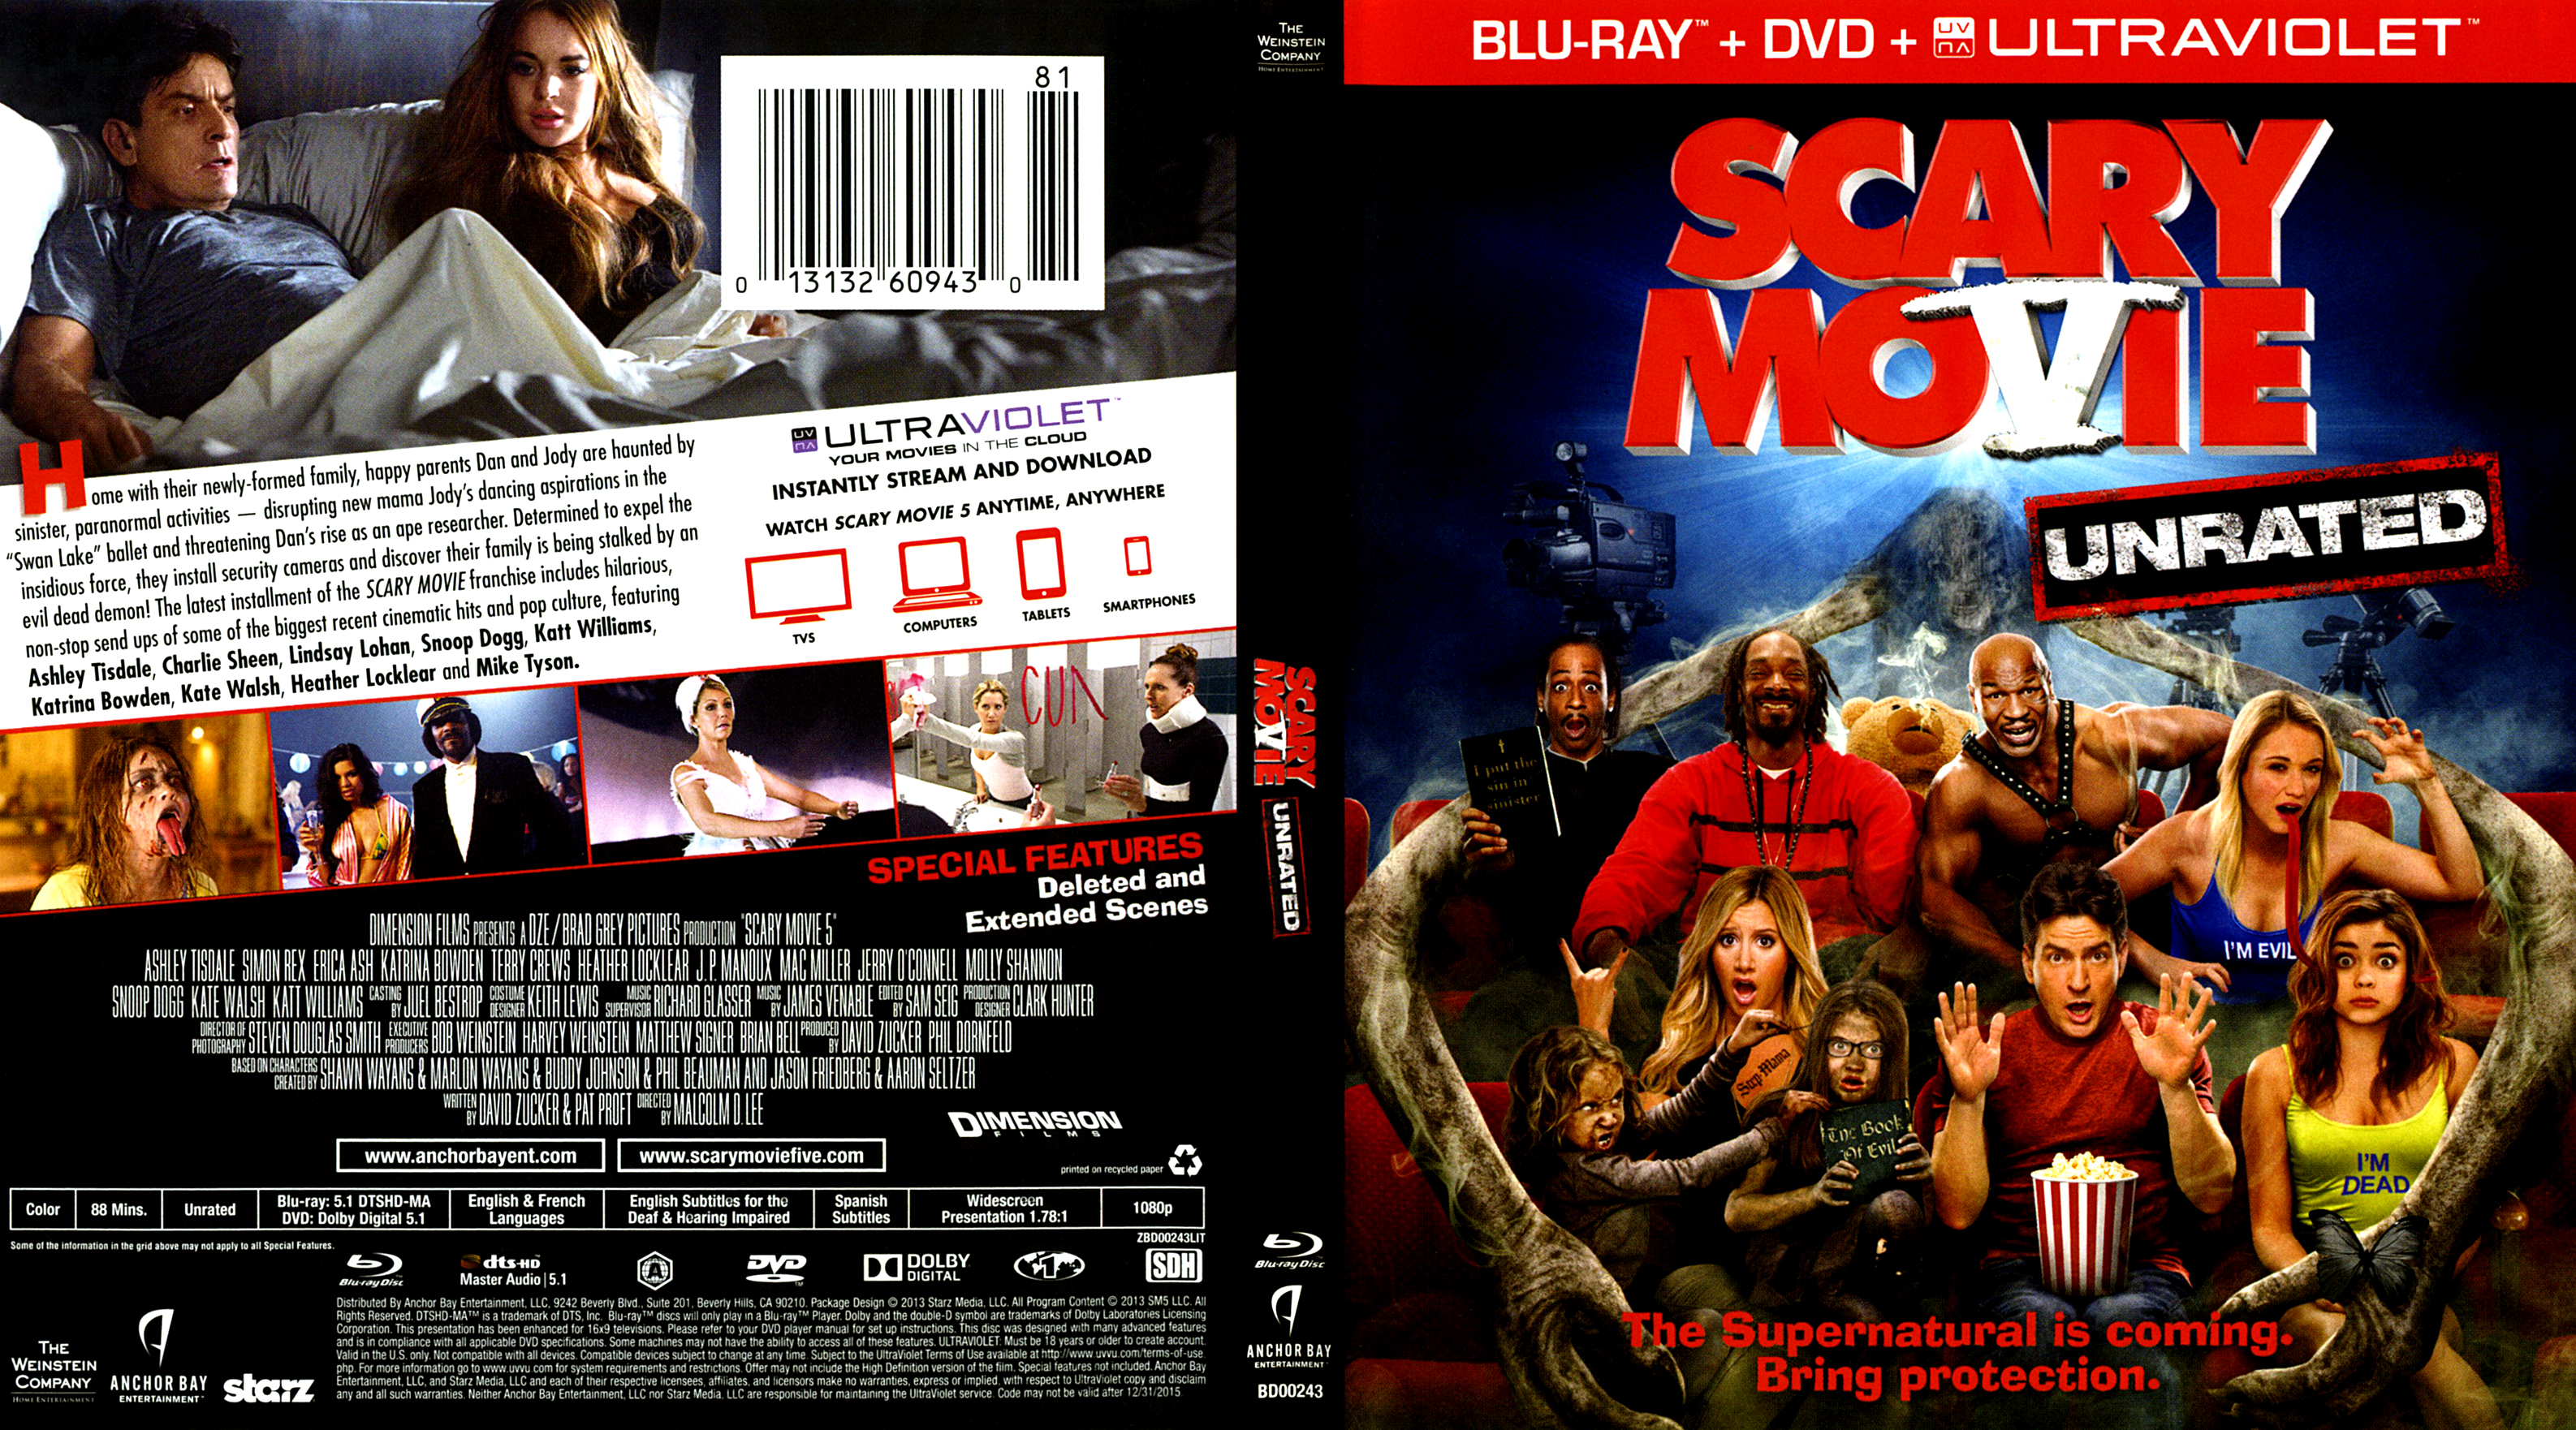 Scary Movie 5 Blu Ray Covers Cover Century Over 500 000 Album Art Covers For Free